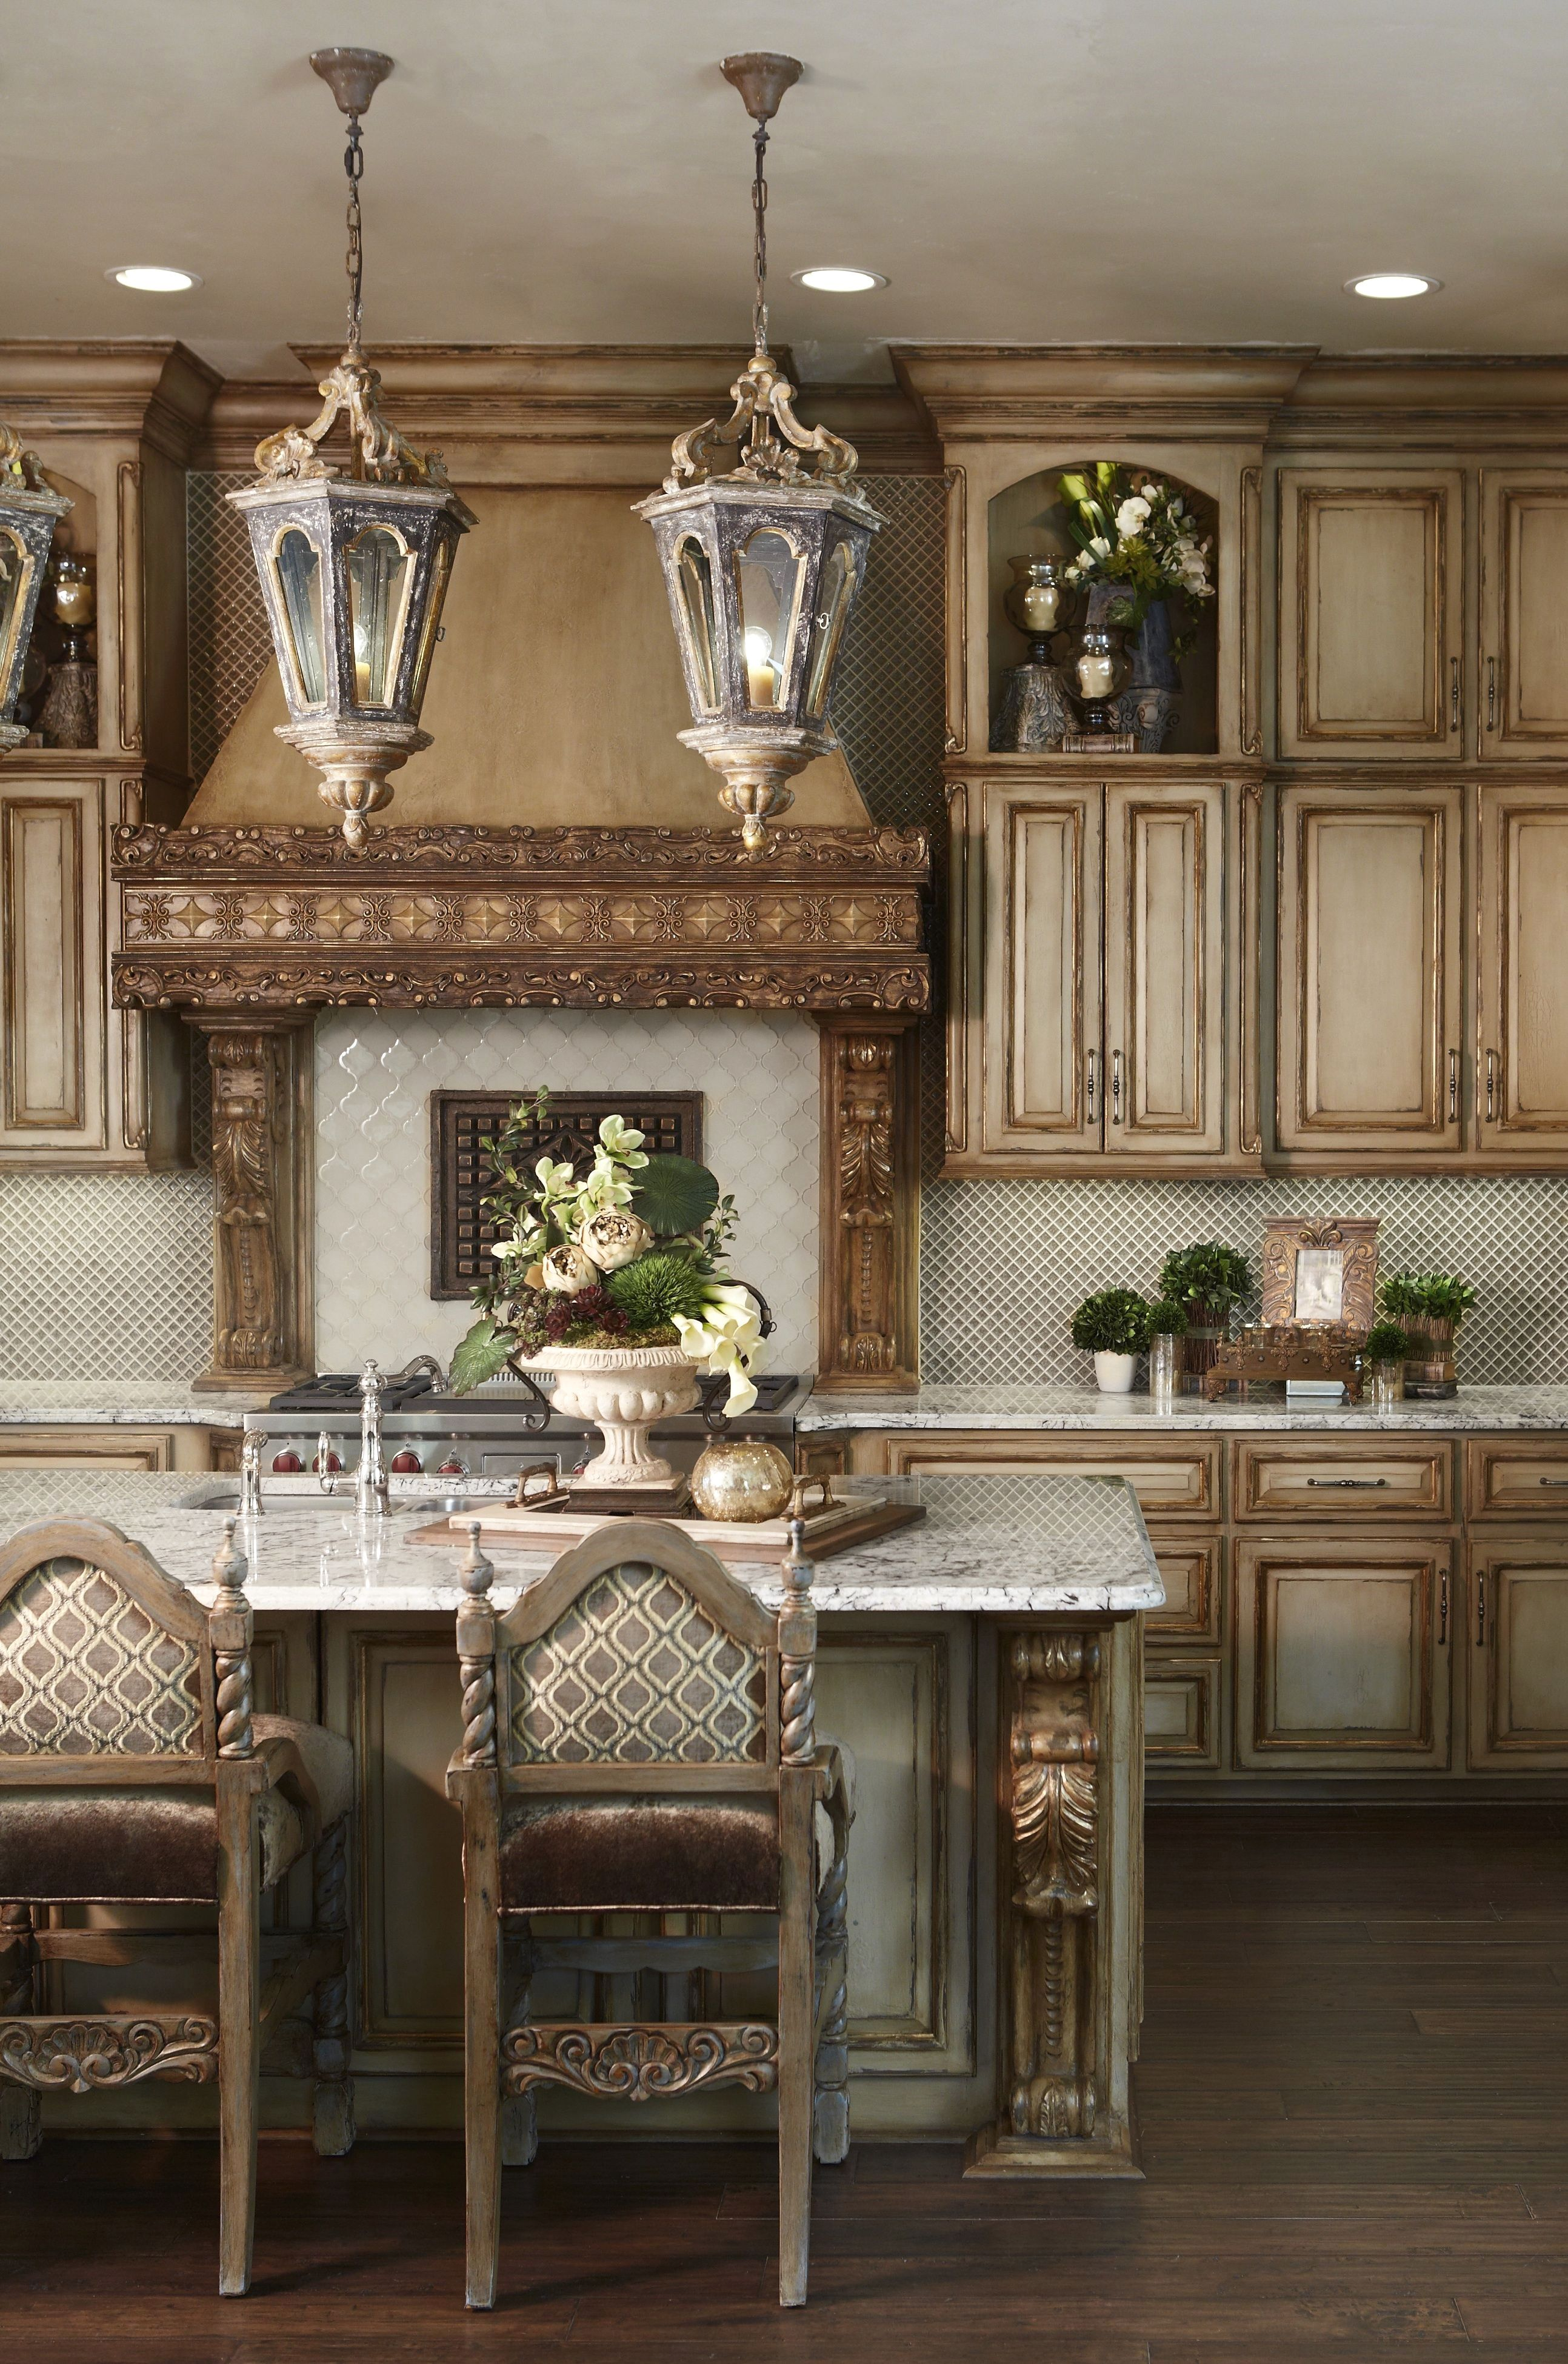 30 amazing french country decorating ideas in 2020 with images french country kitchens on kitchen interior french country id=57216